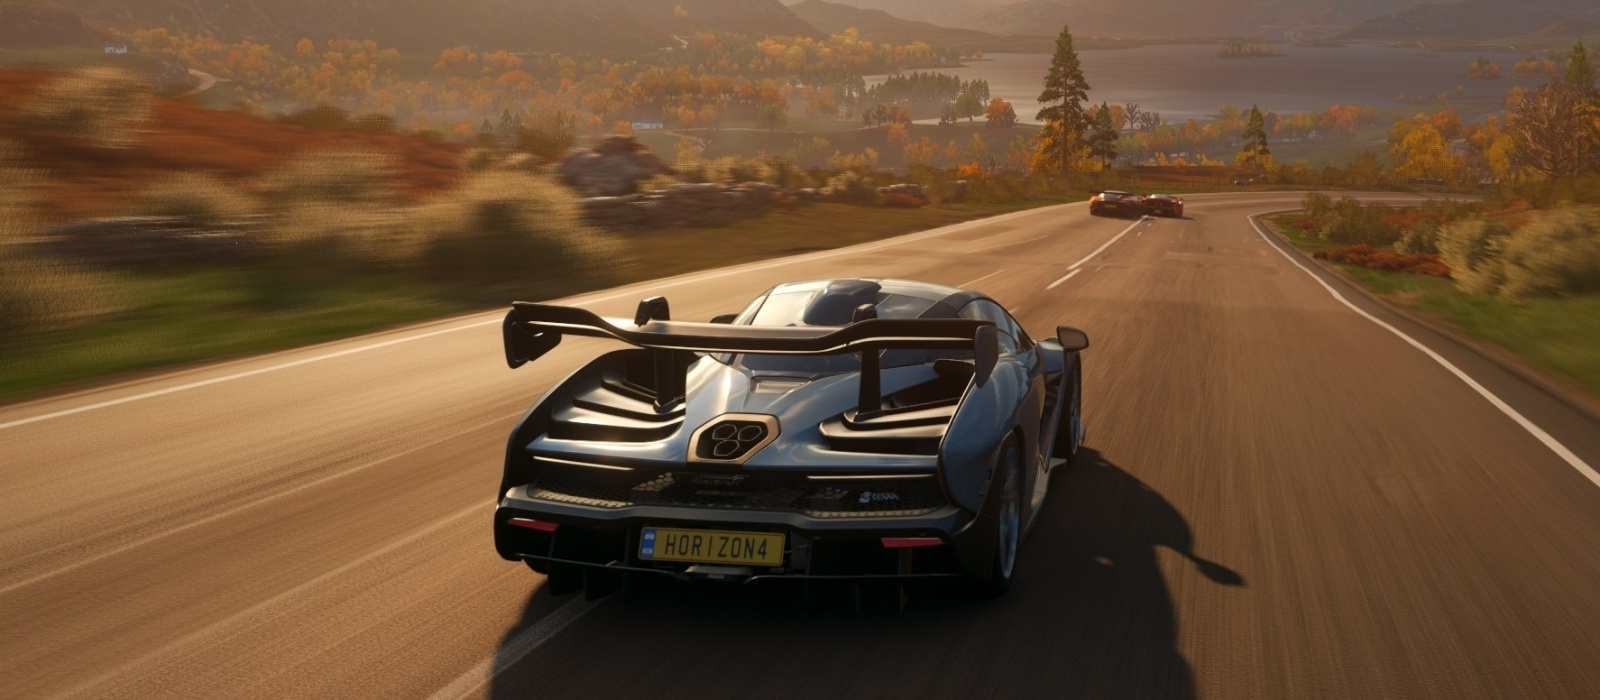 How to set up the steering wheel in Forza Horizon 4. What to do if the game does not see the steering wheel